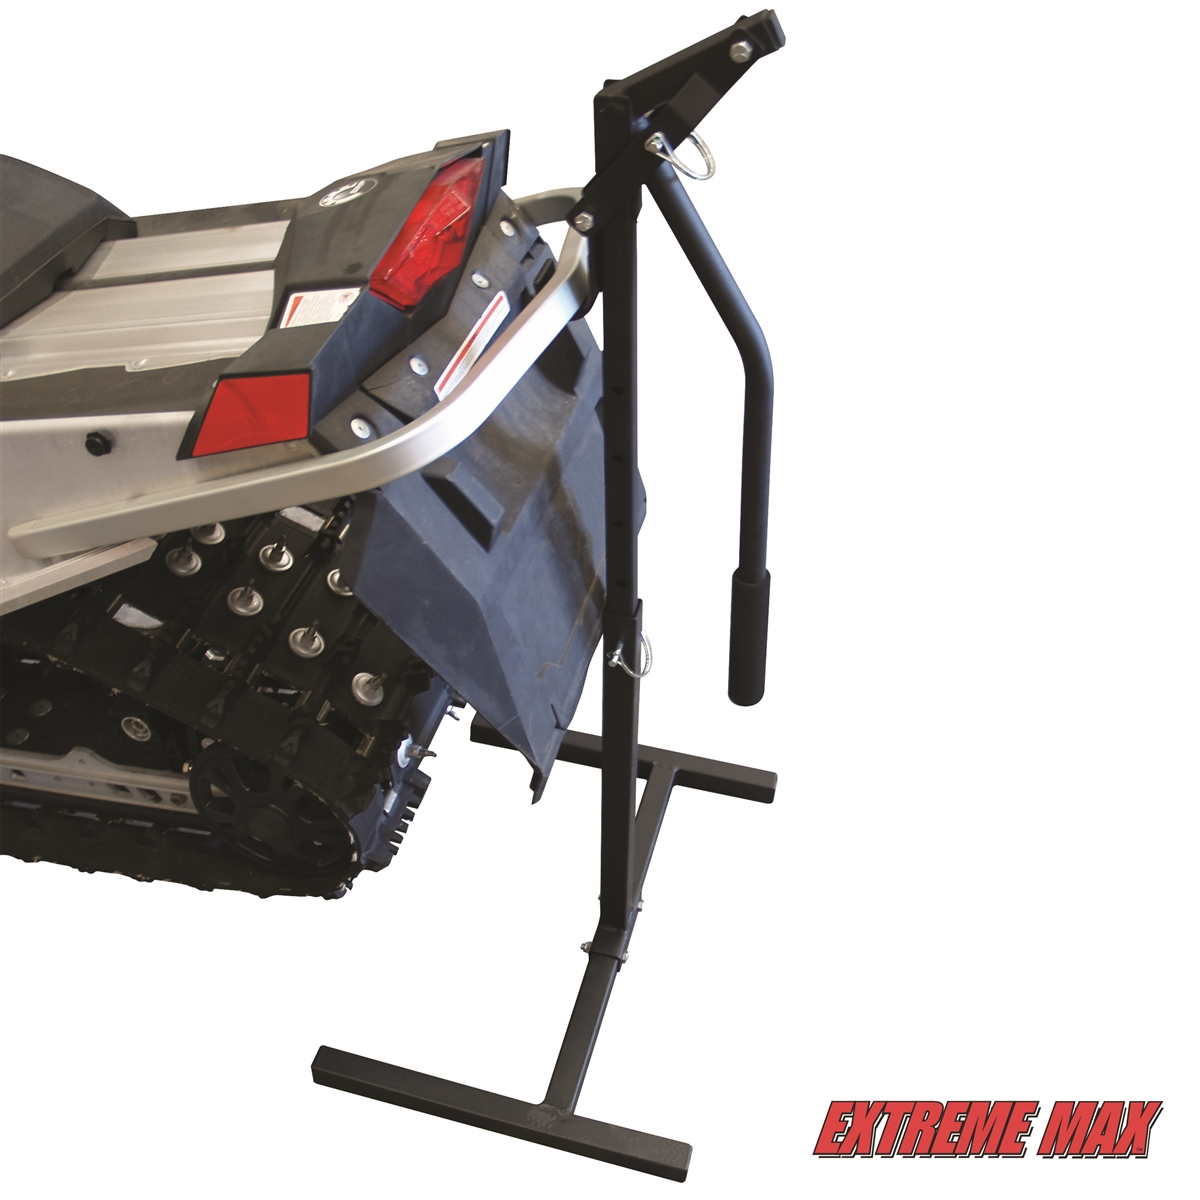 Lever Lift Stand : Extreme max  lever lift stand